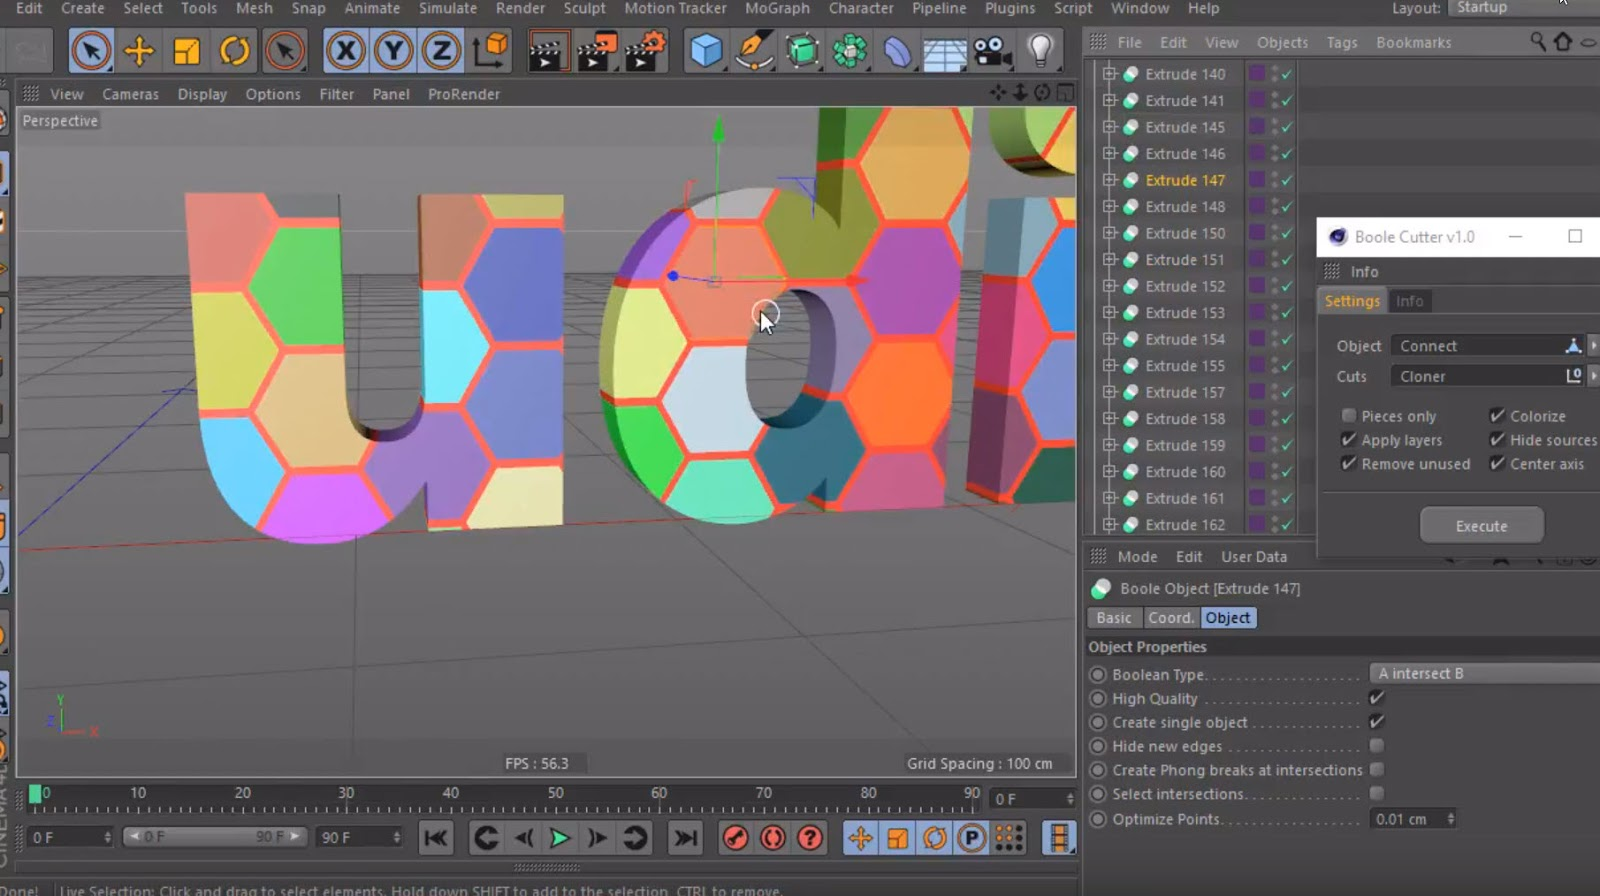 Download Boole Cutter for Cinema 4D by Mike Udin - Plugins